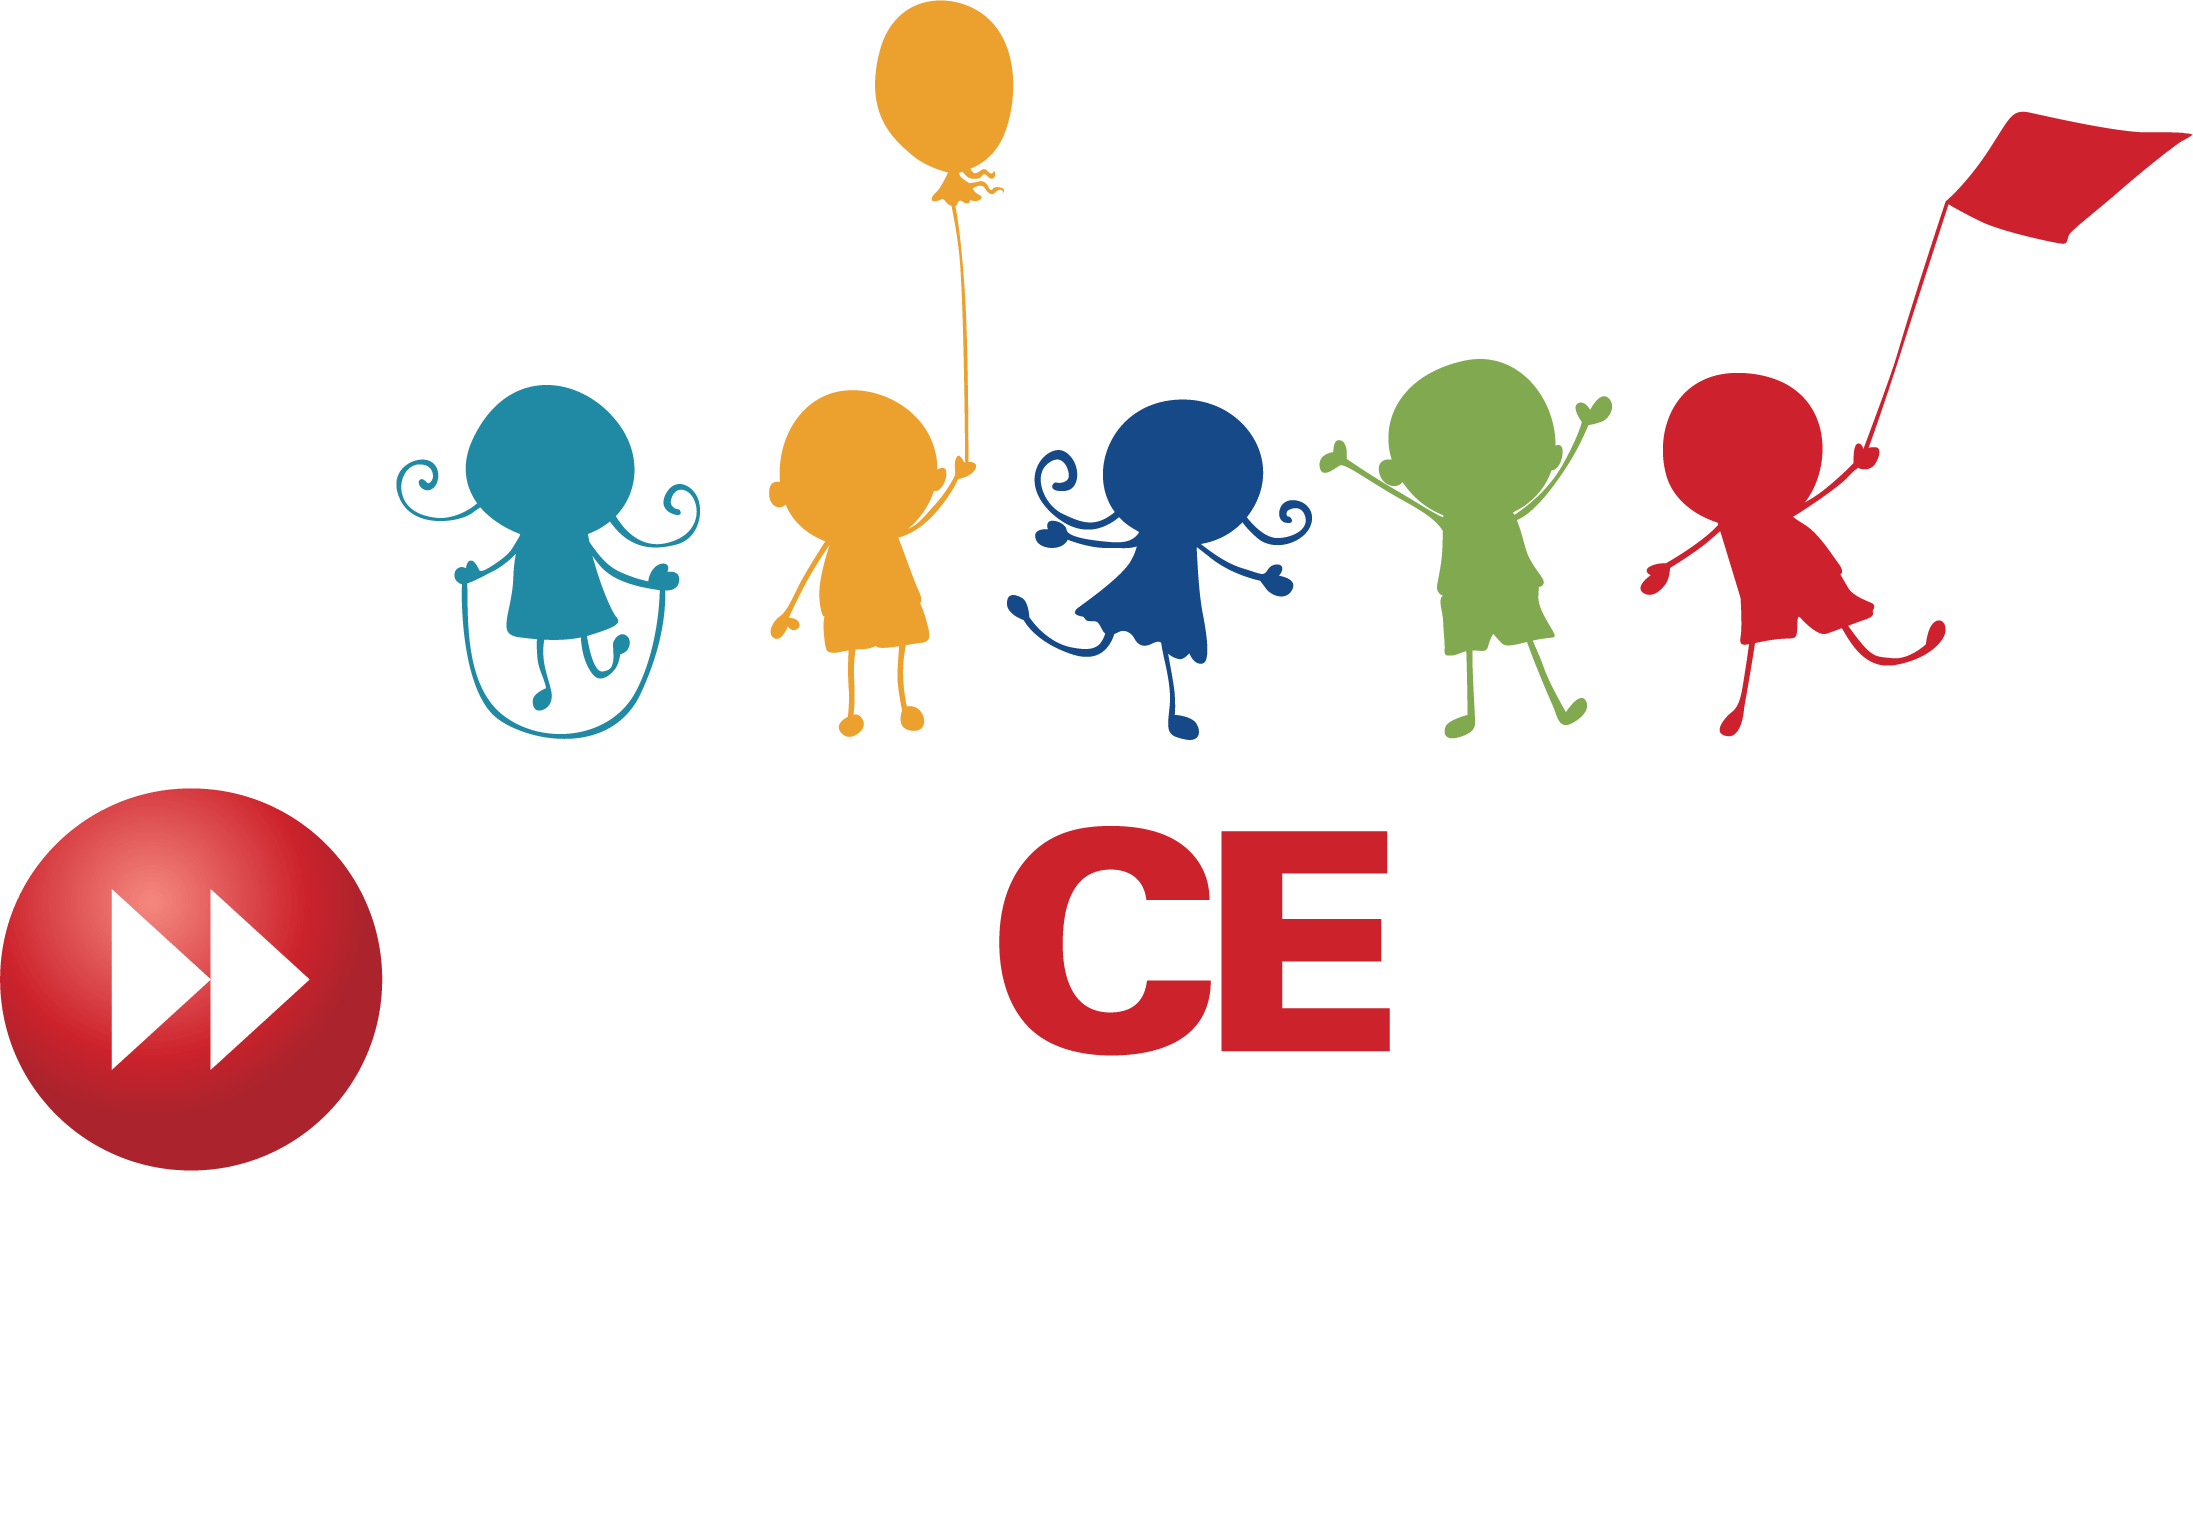 The CE Shop Foundation - Eliminating Childhood Hunger